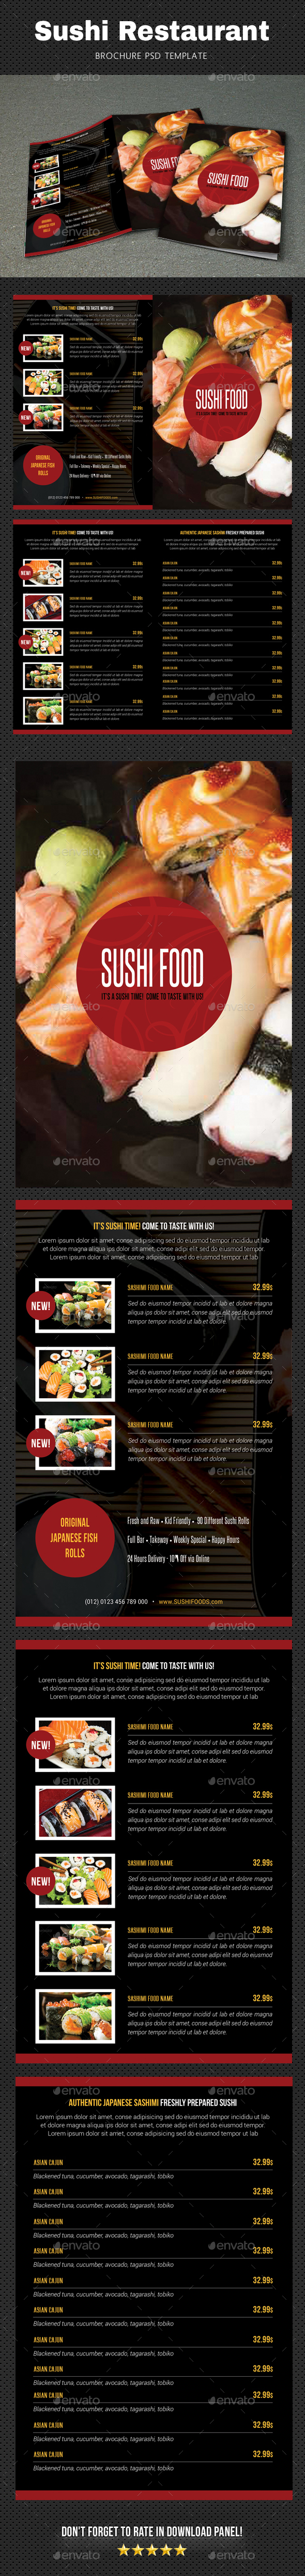 Sushi Menu Brochure 3 - Food Menus Print Templates